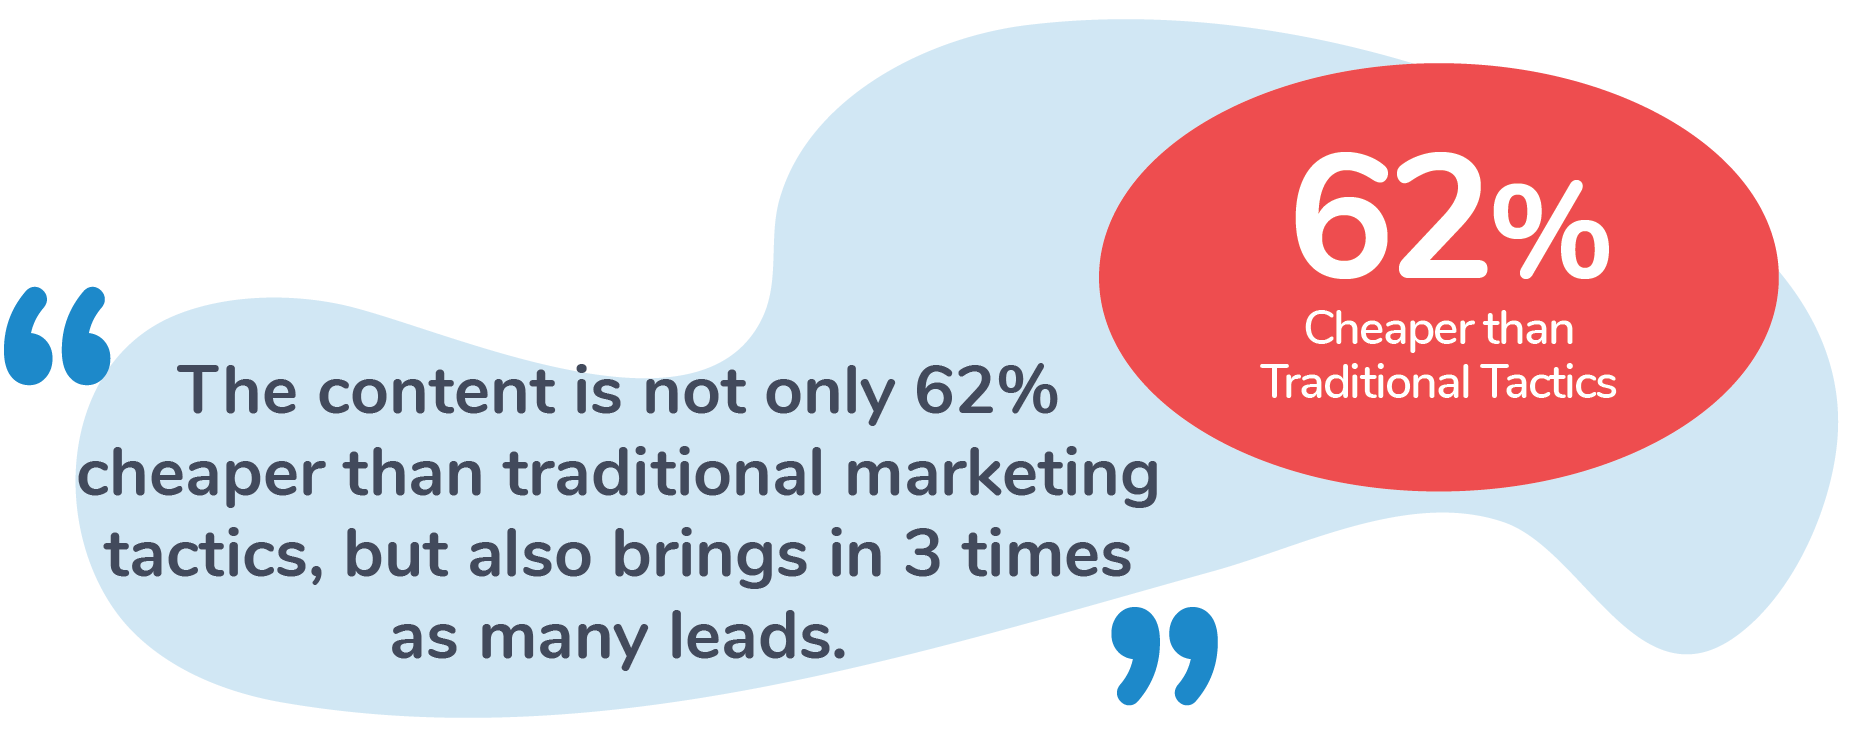 Content Marketing is Cheaper Than Traditional Marketing